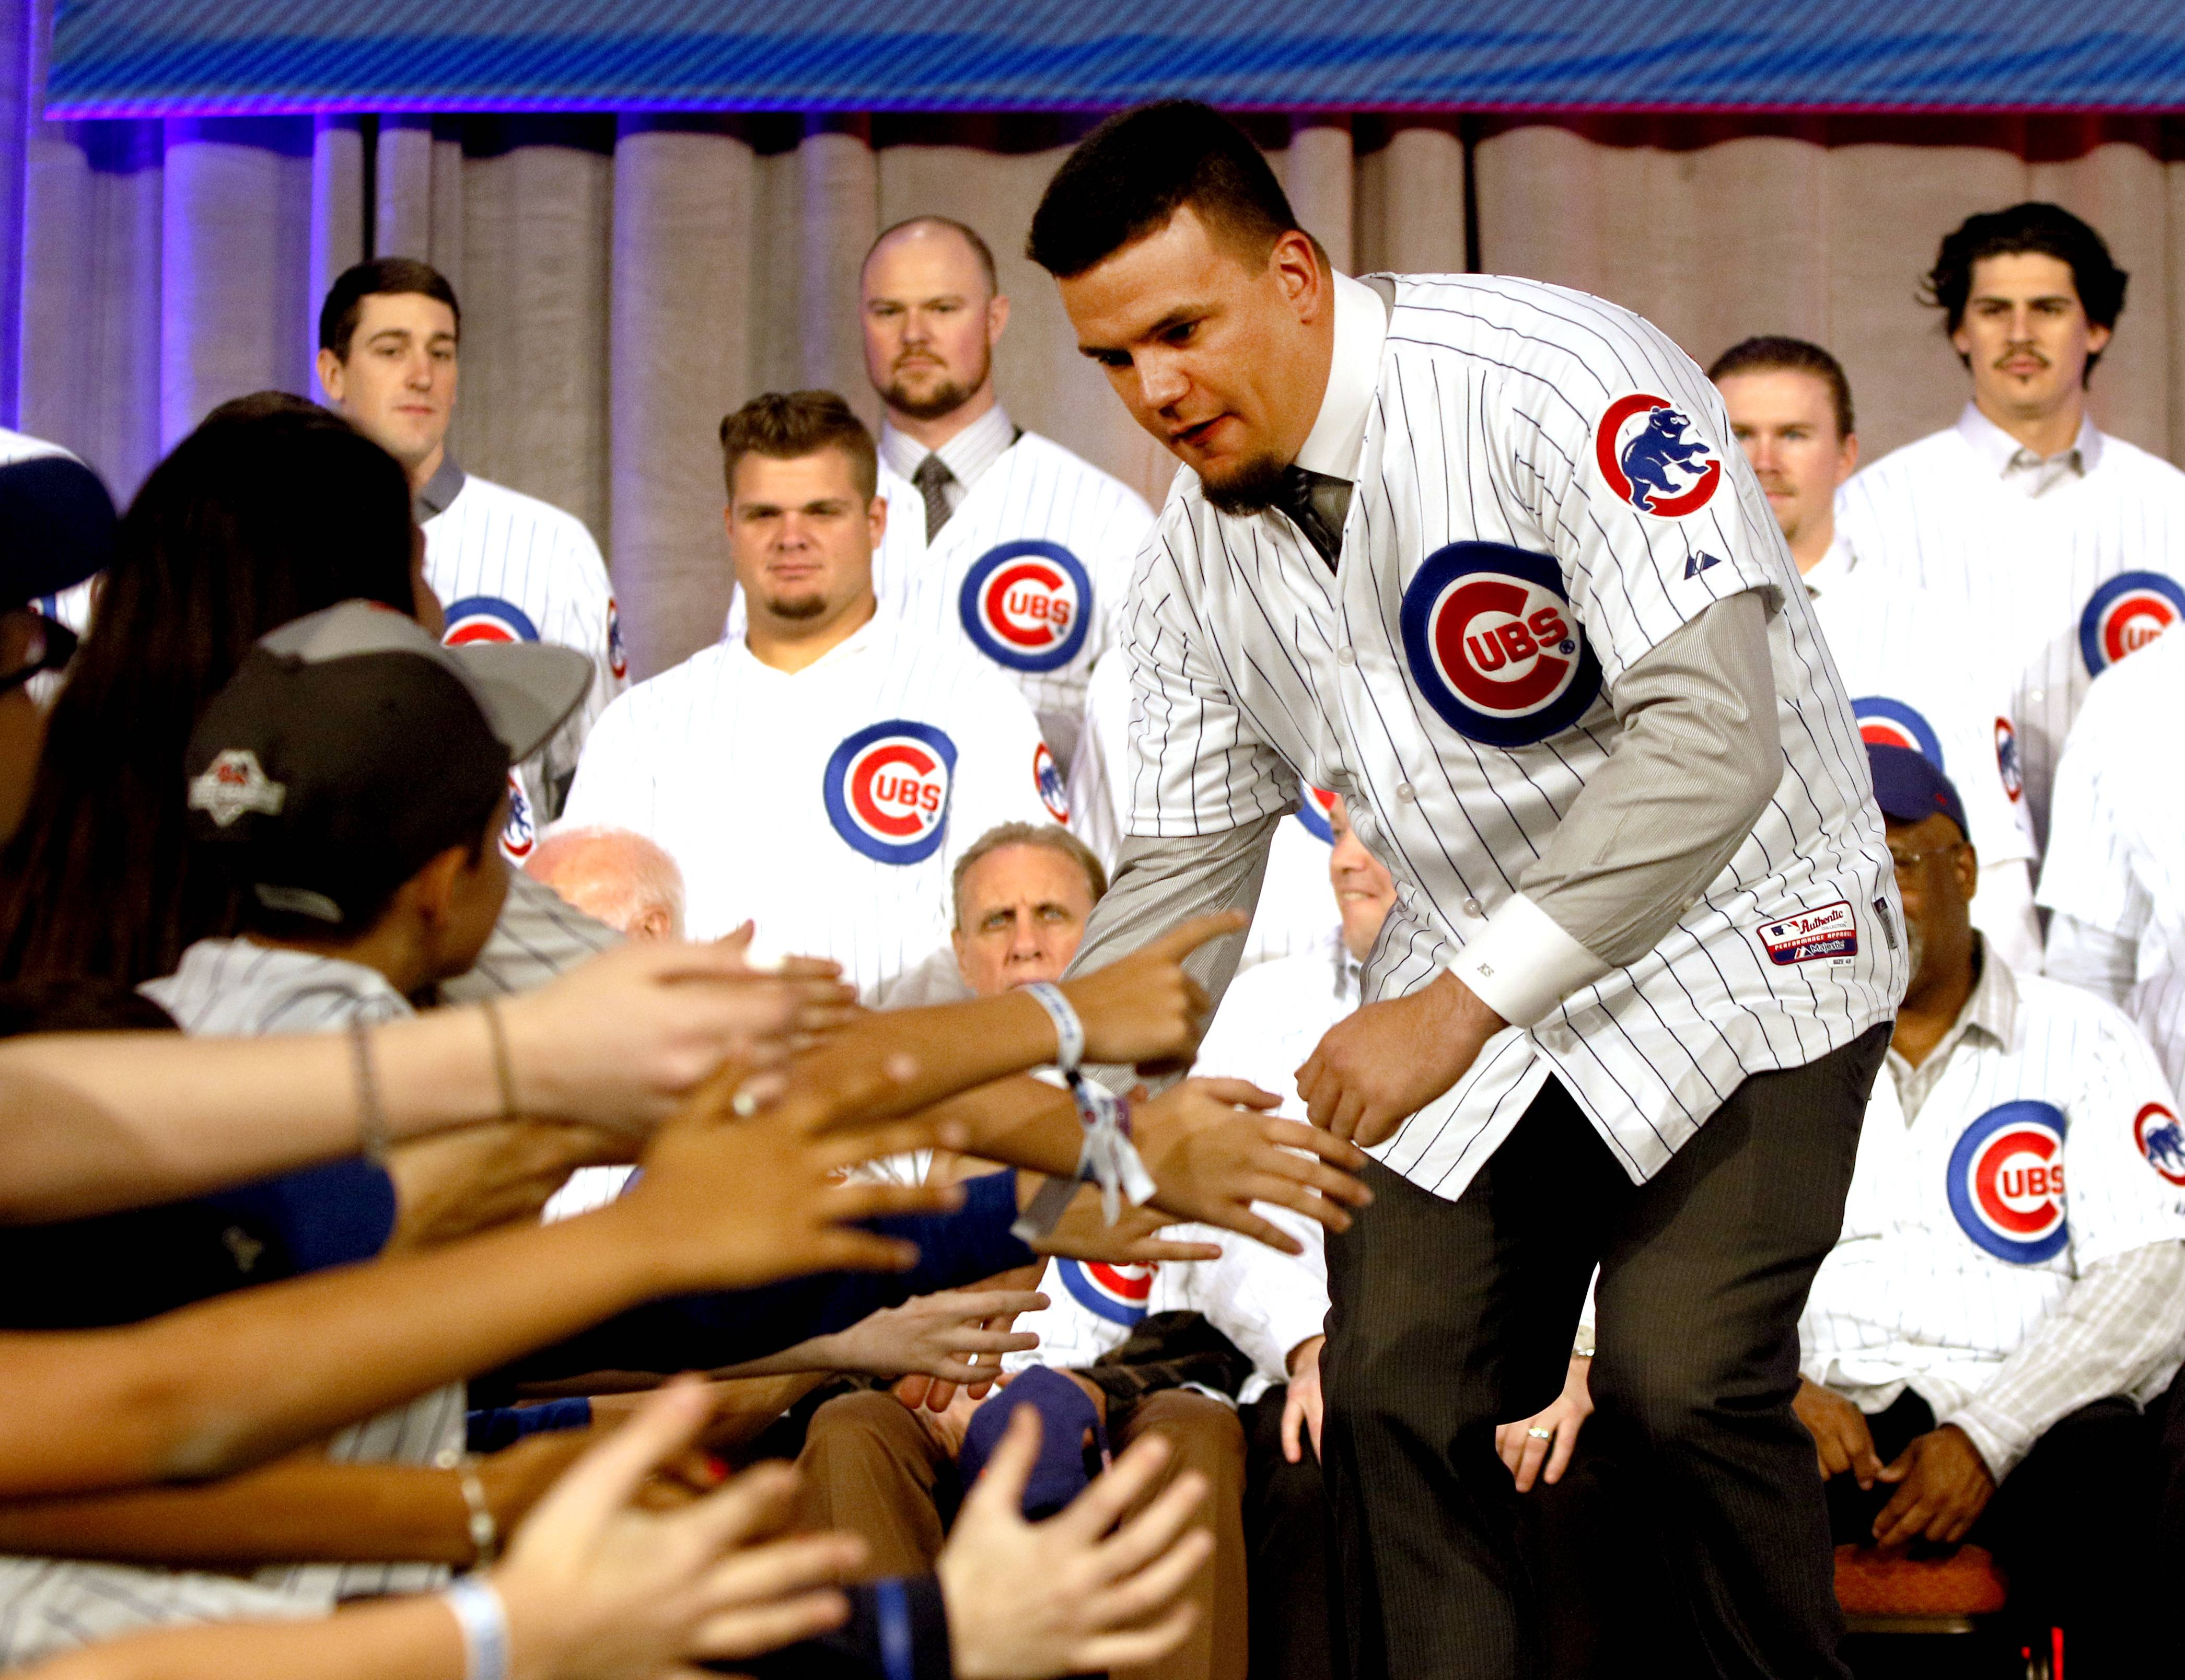 Kyle Schwarber greets fans during the annual Cubs Convention at the Sheraton Grand Chicago.